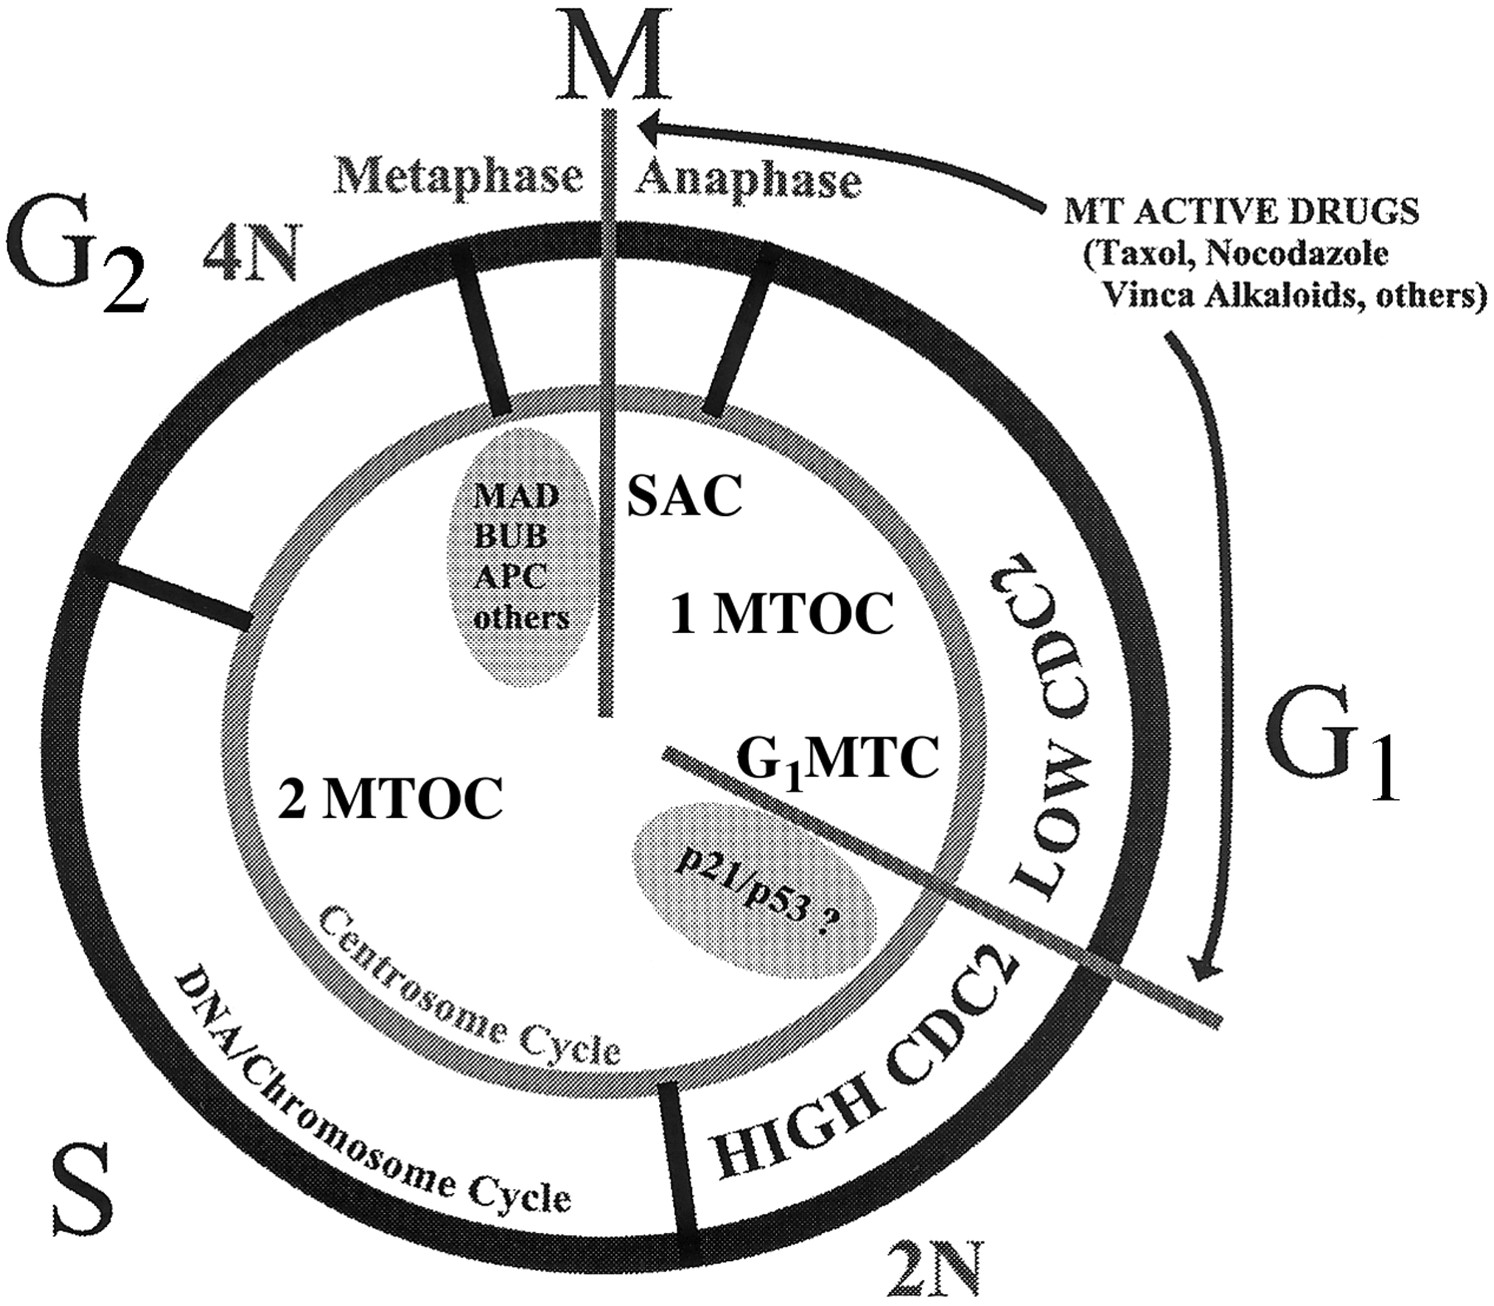 Two MTD-induced cell cycle checkpoints. This illustration shows the proposed relative location of the 2 known cell cycle arrest points in cells with MTD (microtubule damage). SAC indicates spindle assembly checkpoint; G1MTC, G1 phase microtubule checkpoint. The centrosome cycle (1 or 2 MTOC indicates microtubule organizing centers) is shown to be coordinated with the DNA/chromosome cycle (2N or 4N DNA content). The arrests the cell cycle in G1 phase between the shift from a low cdc2-expressing state to a high cdc2-expressing state. http://www.bloodjournal.org/content/97/5/1505?sso-checked=true